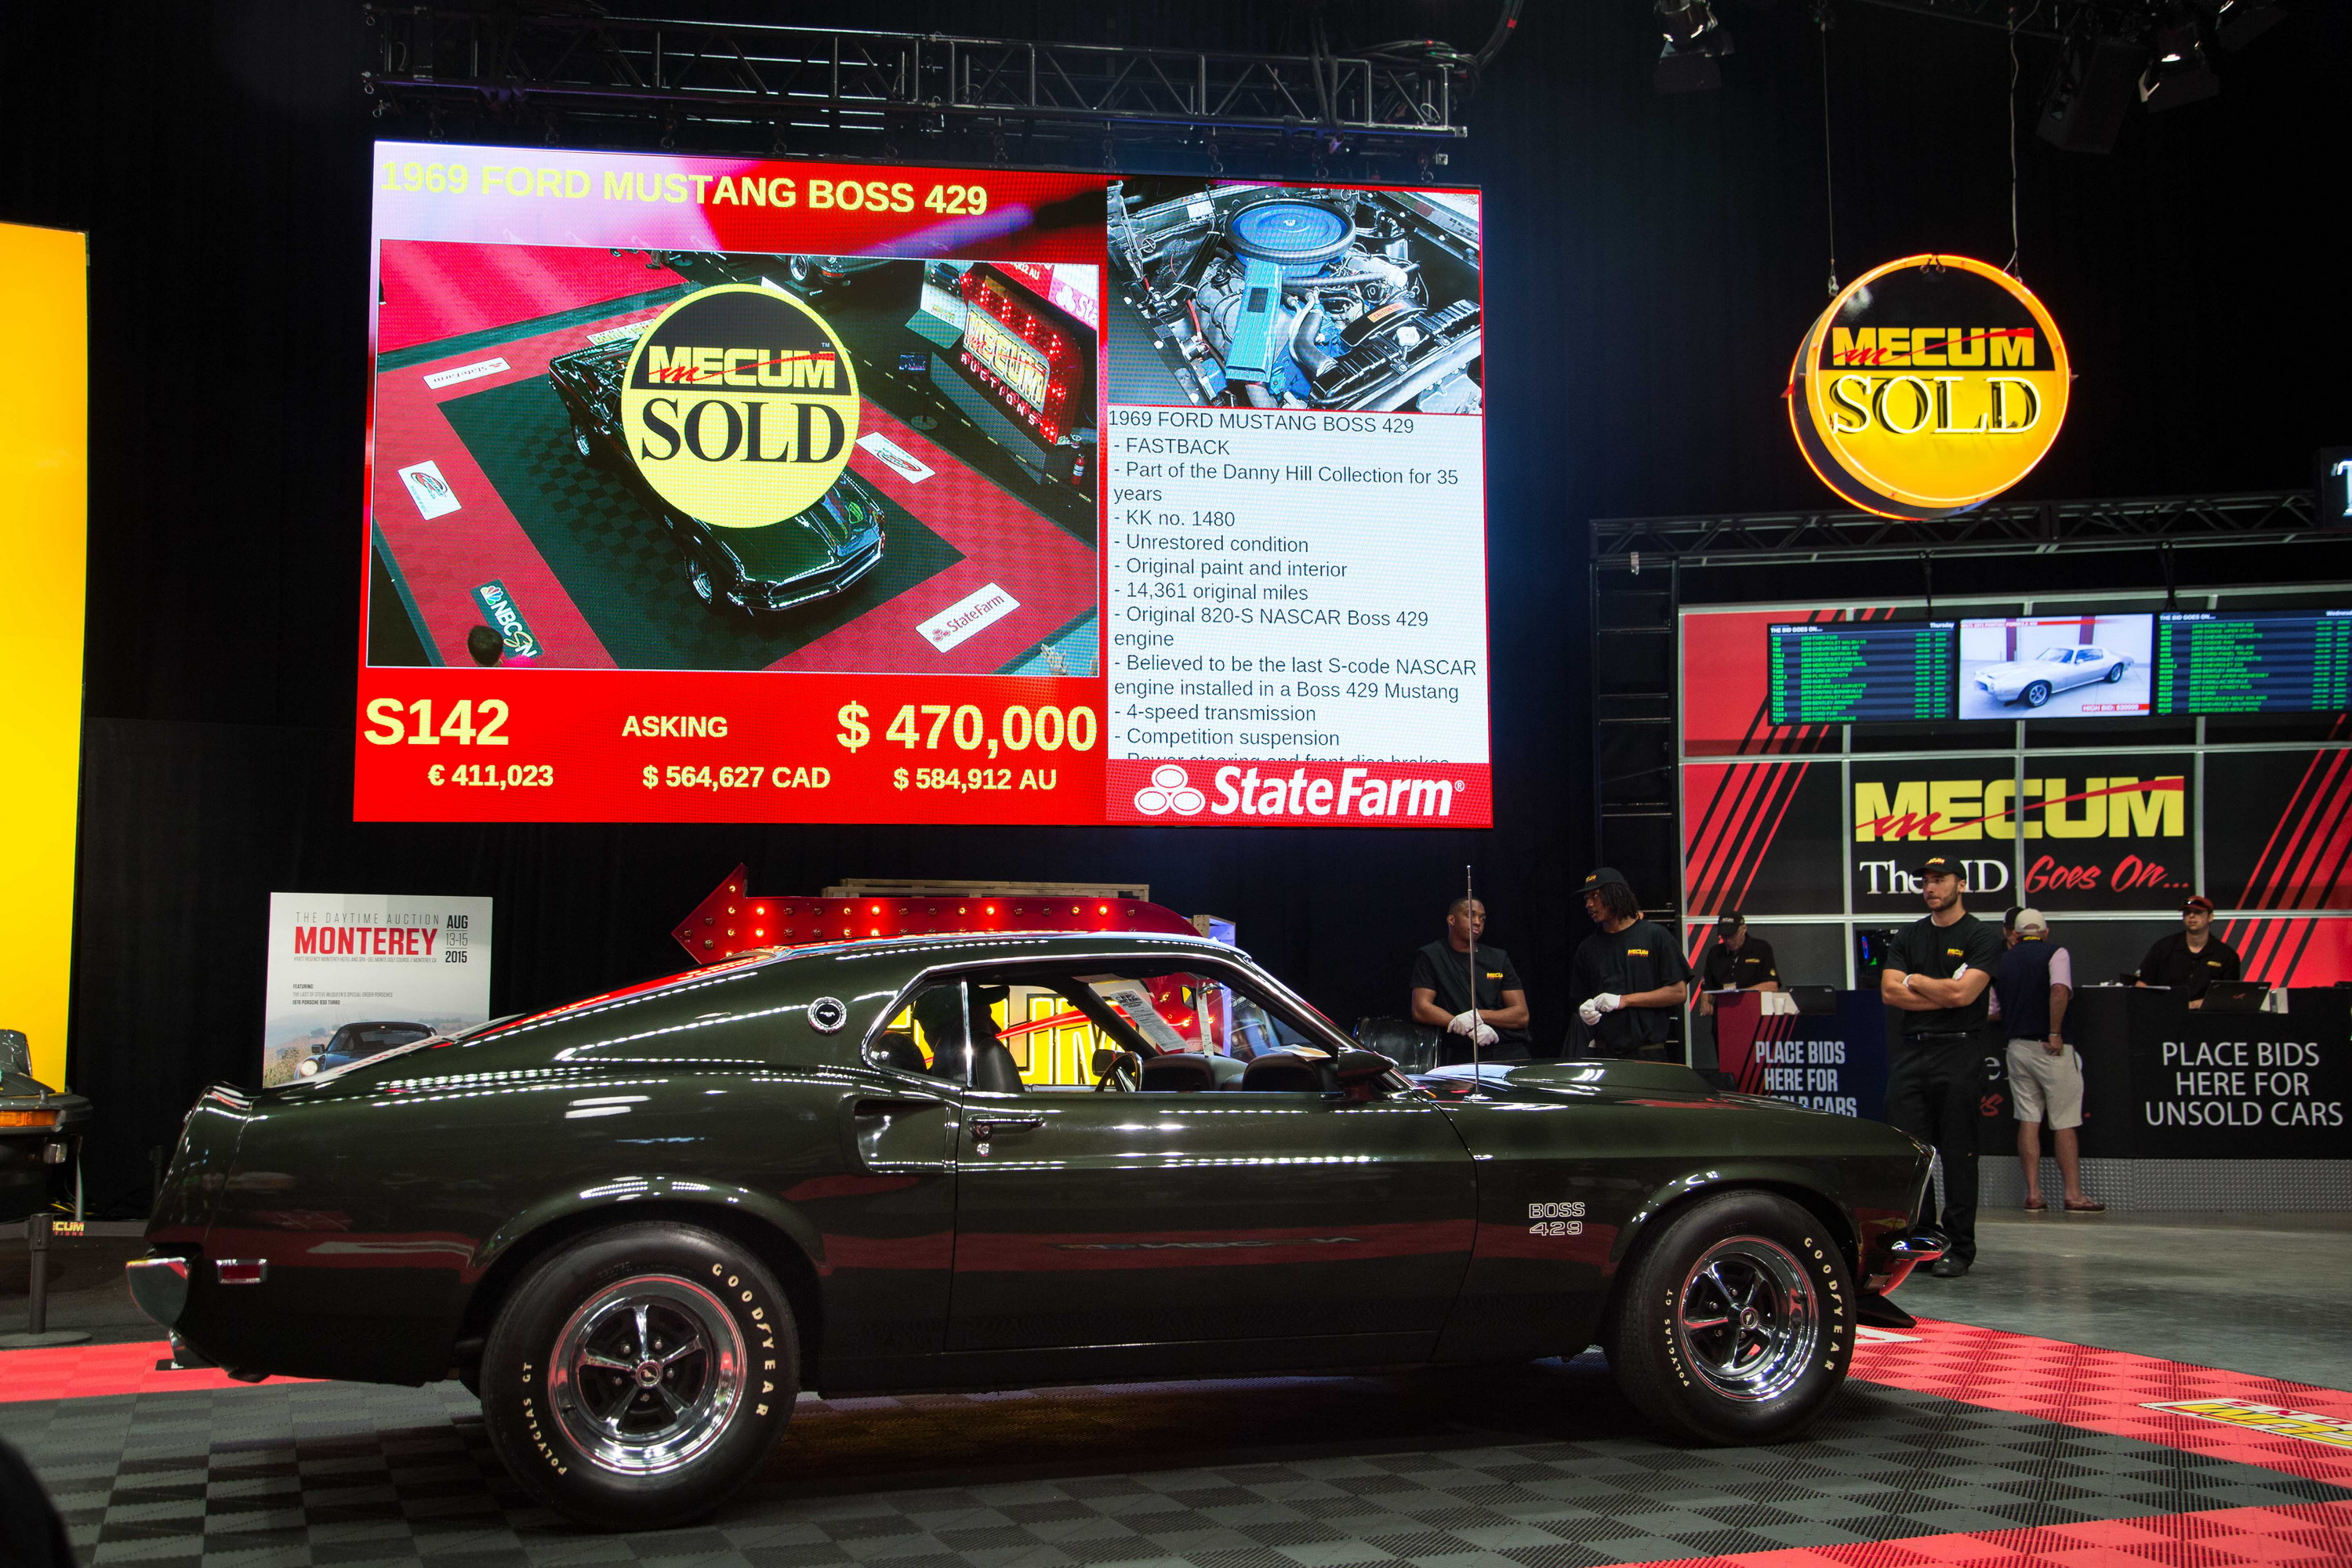 1969 Ford Mustang Boss 429 Top Speed Fastback